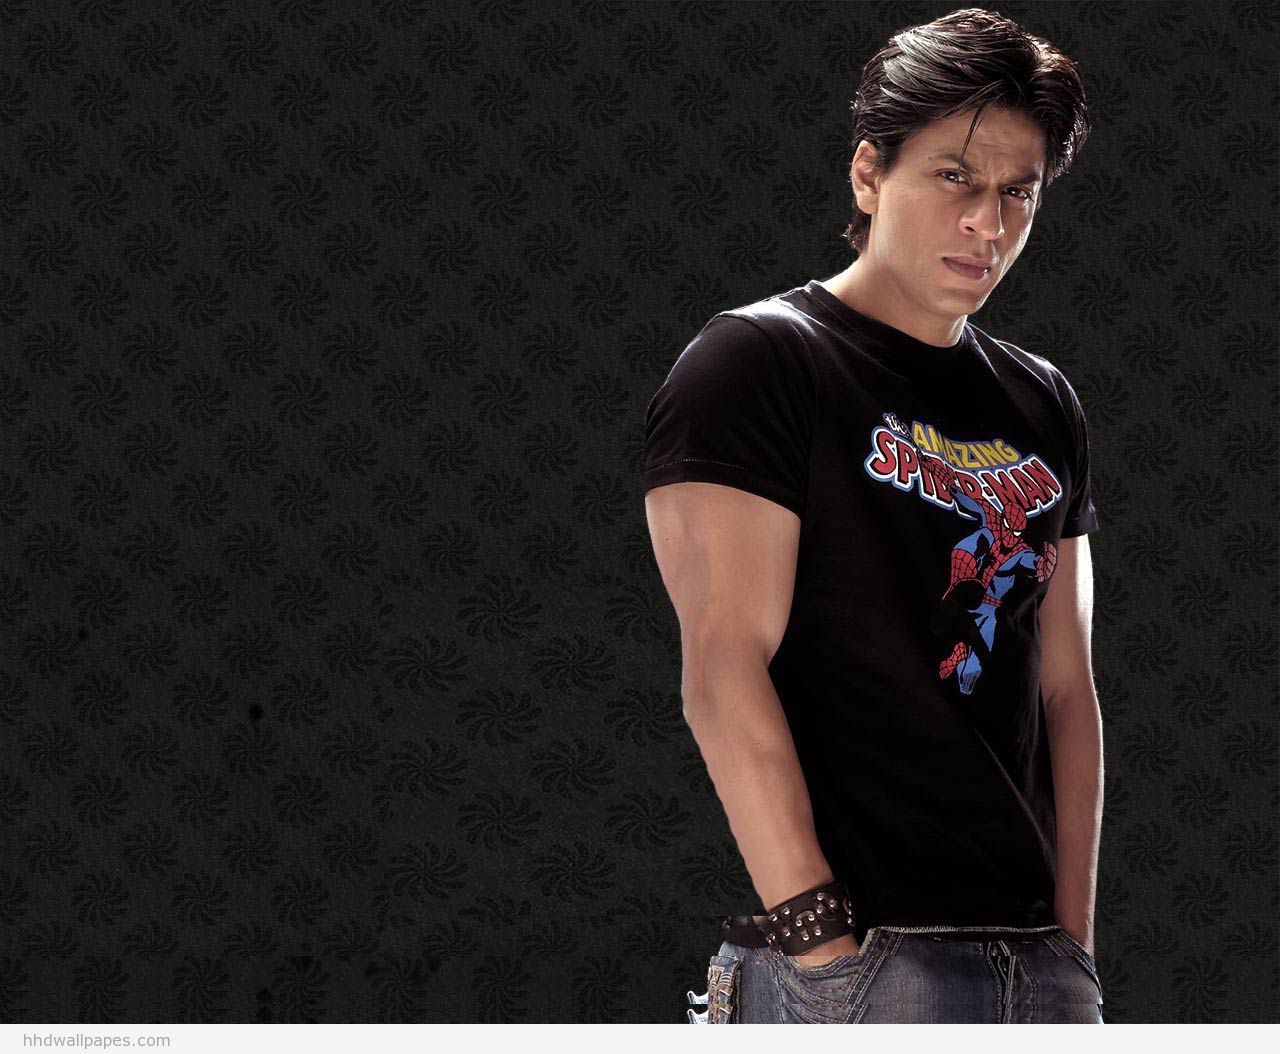 Sharukh khan hd wallpapers - Shahrukh khan cool wallpaper ...